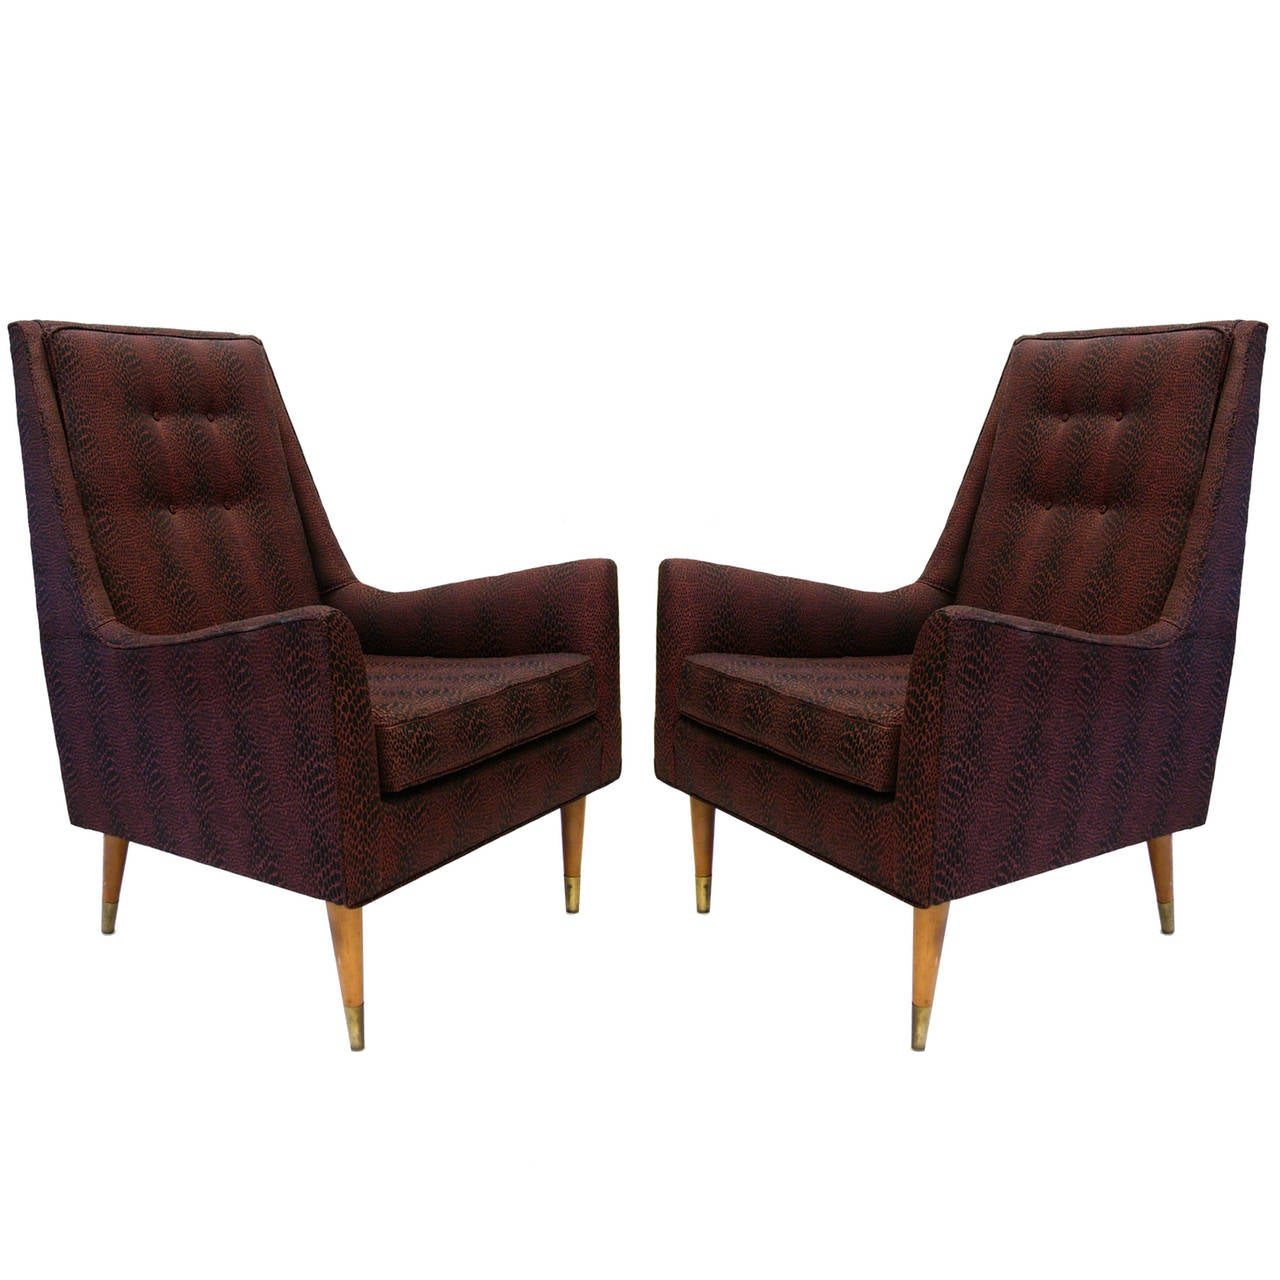 King Chairs Milo Baughman For James Inc 39king 39 Chair At 1stdibs